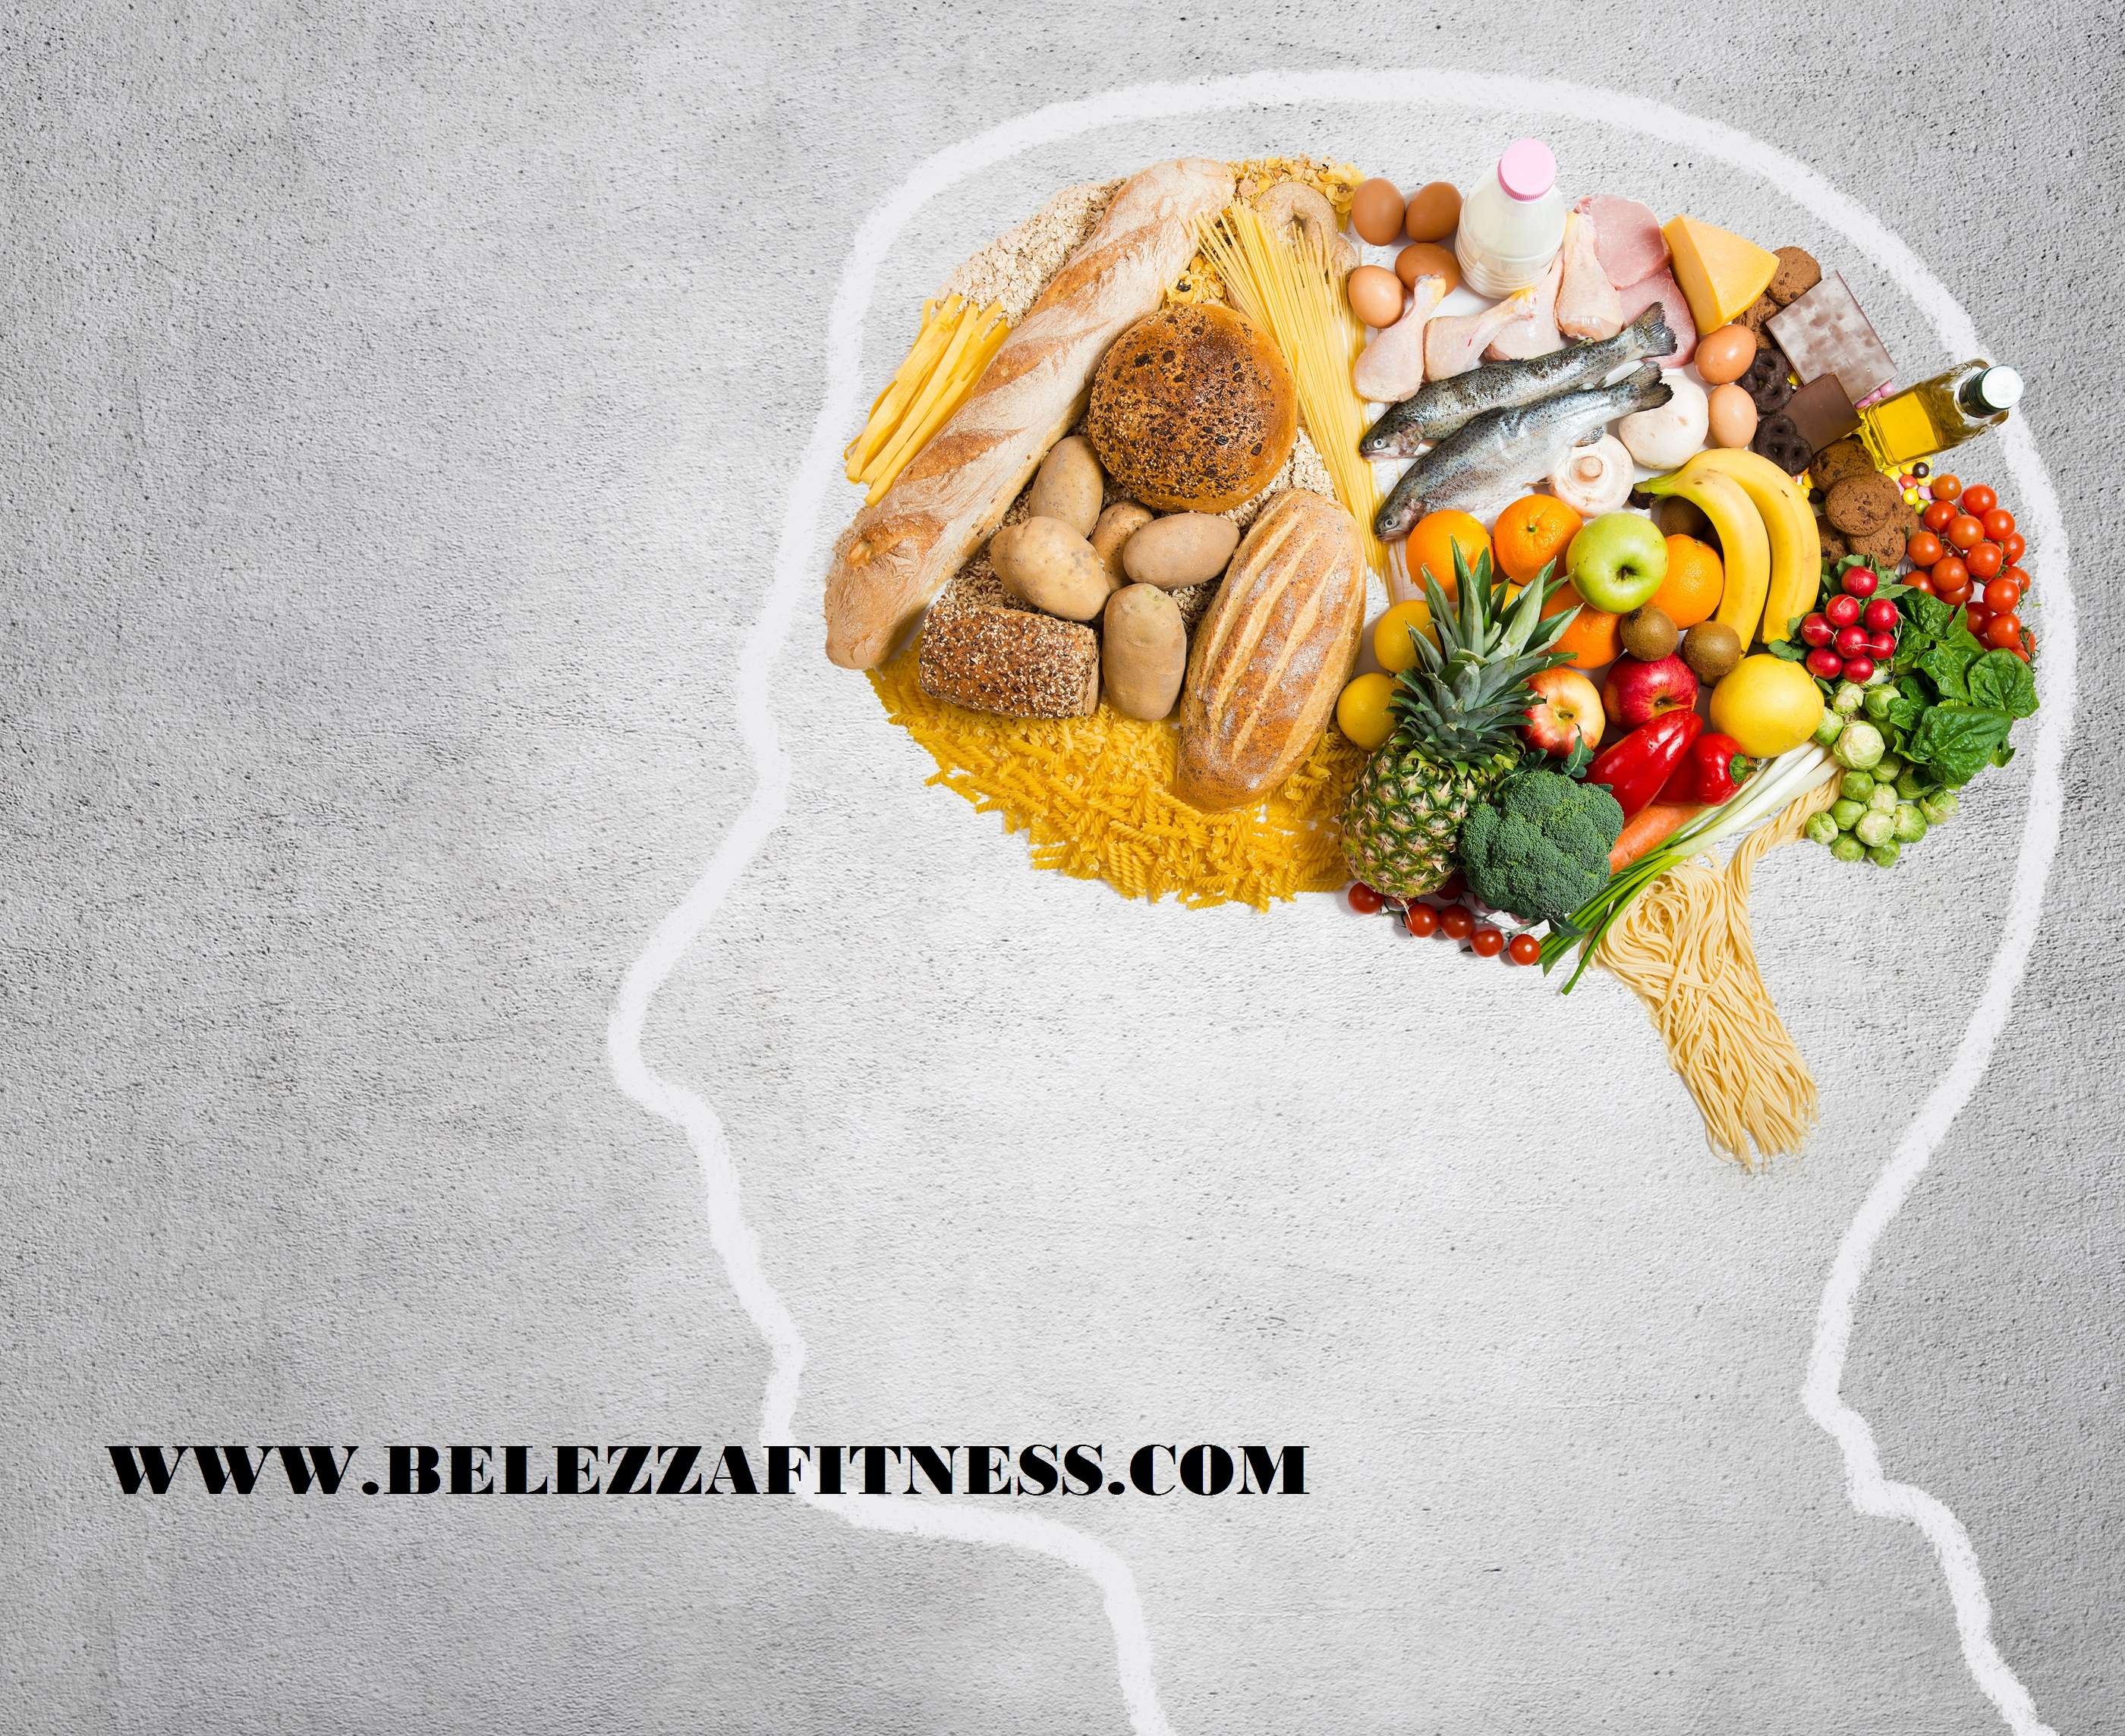 GOOD FOOD,GOOD MOOD! How food affects our mental health.